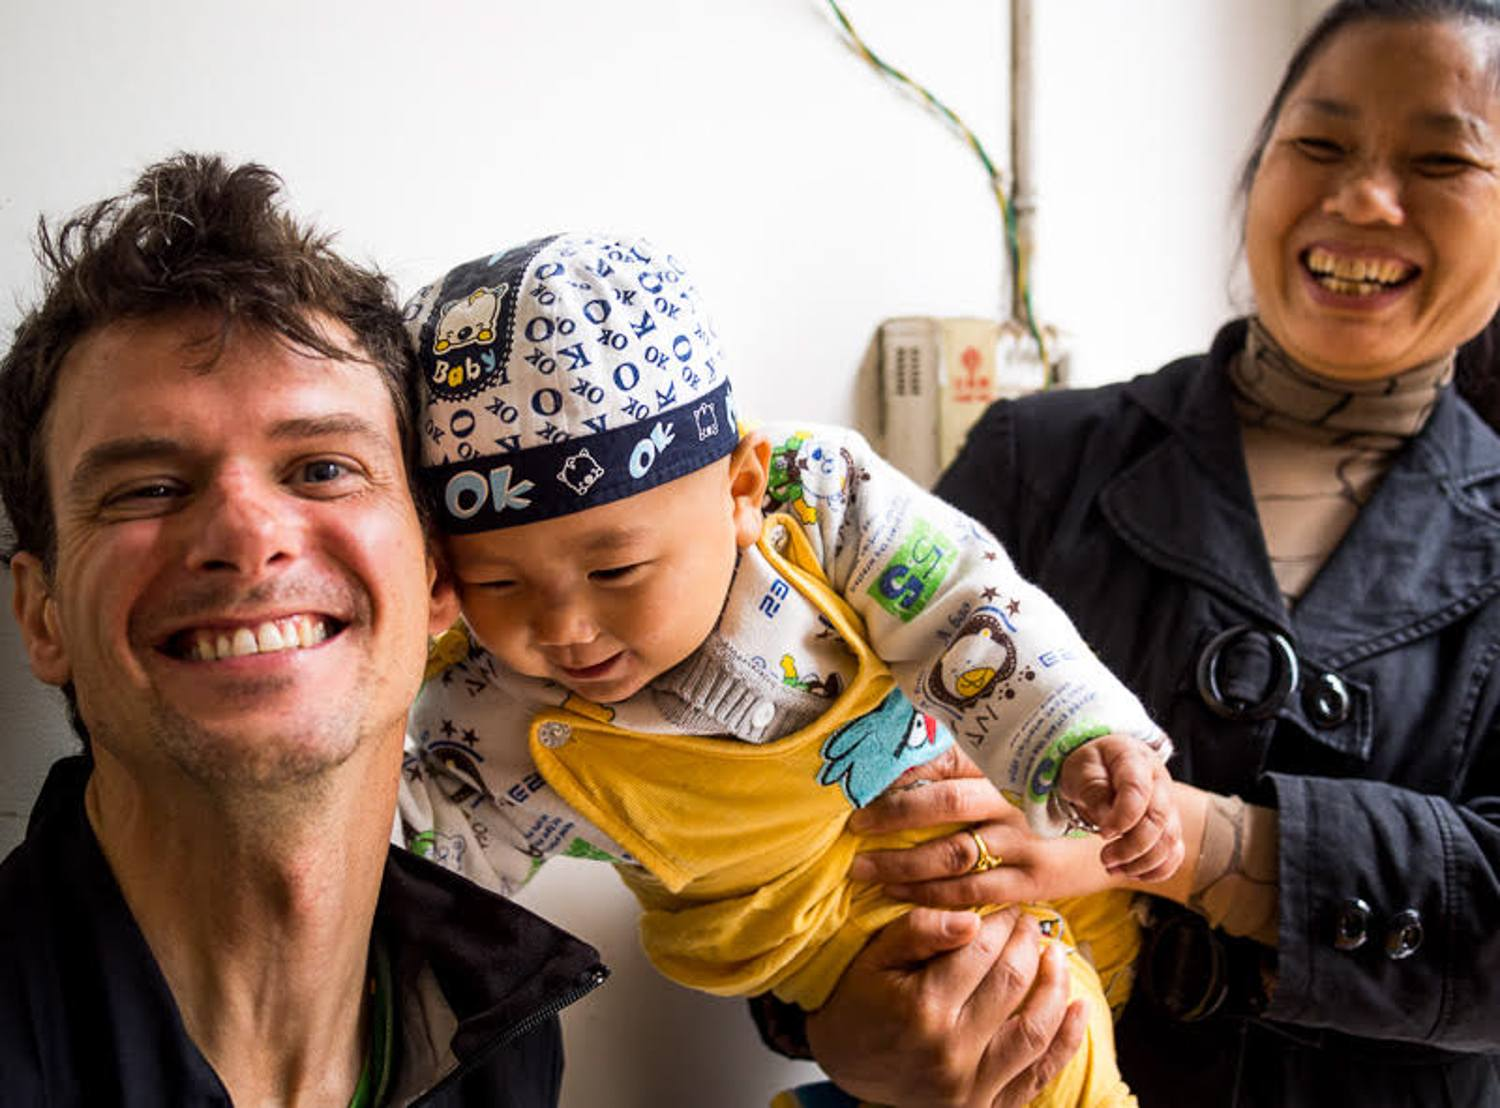 In small villages, people would often bring their babies to meet the strange foreigners.